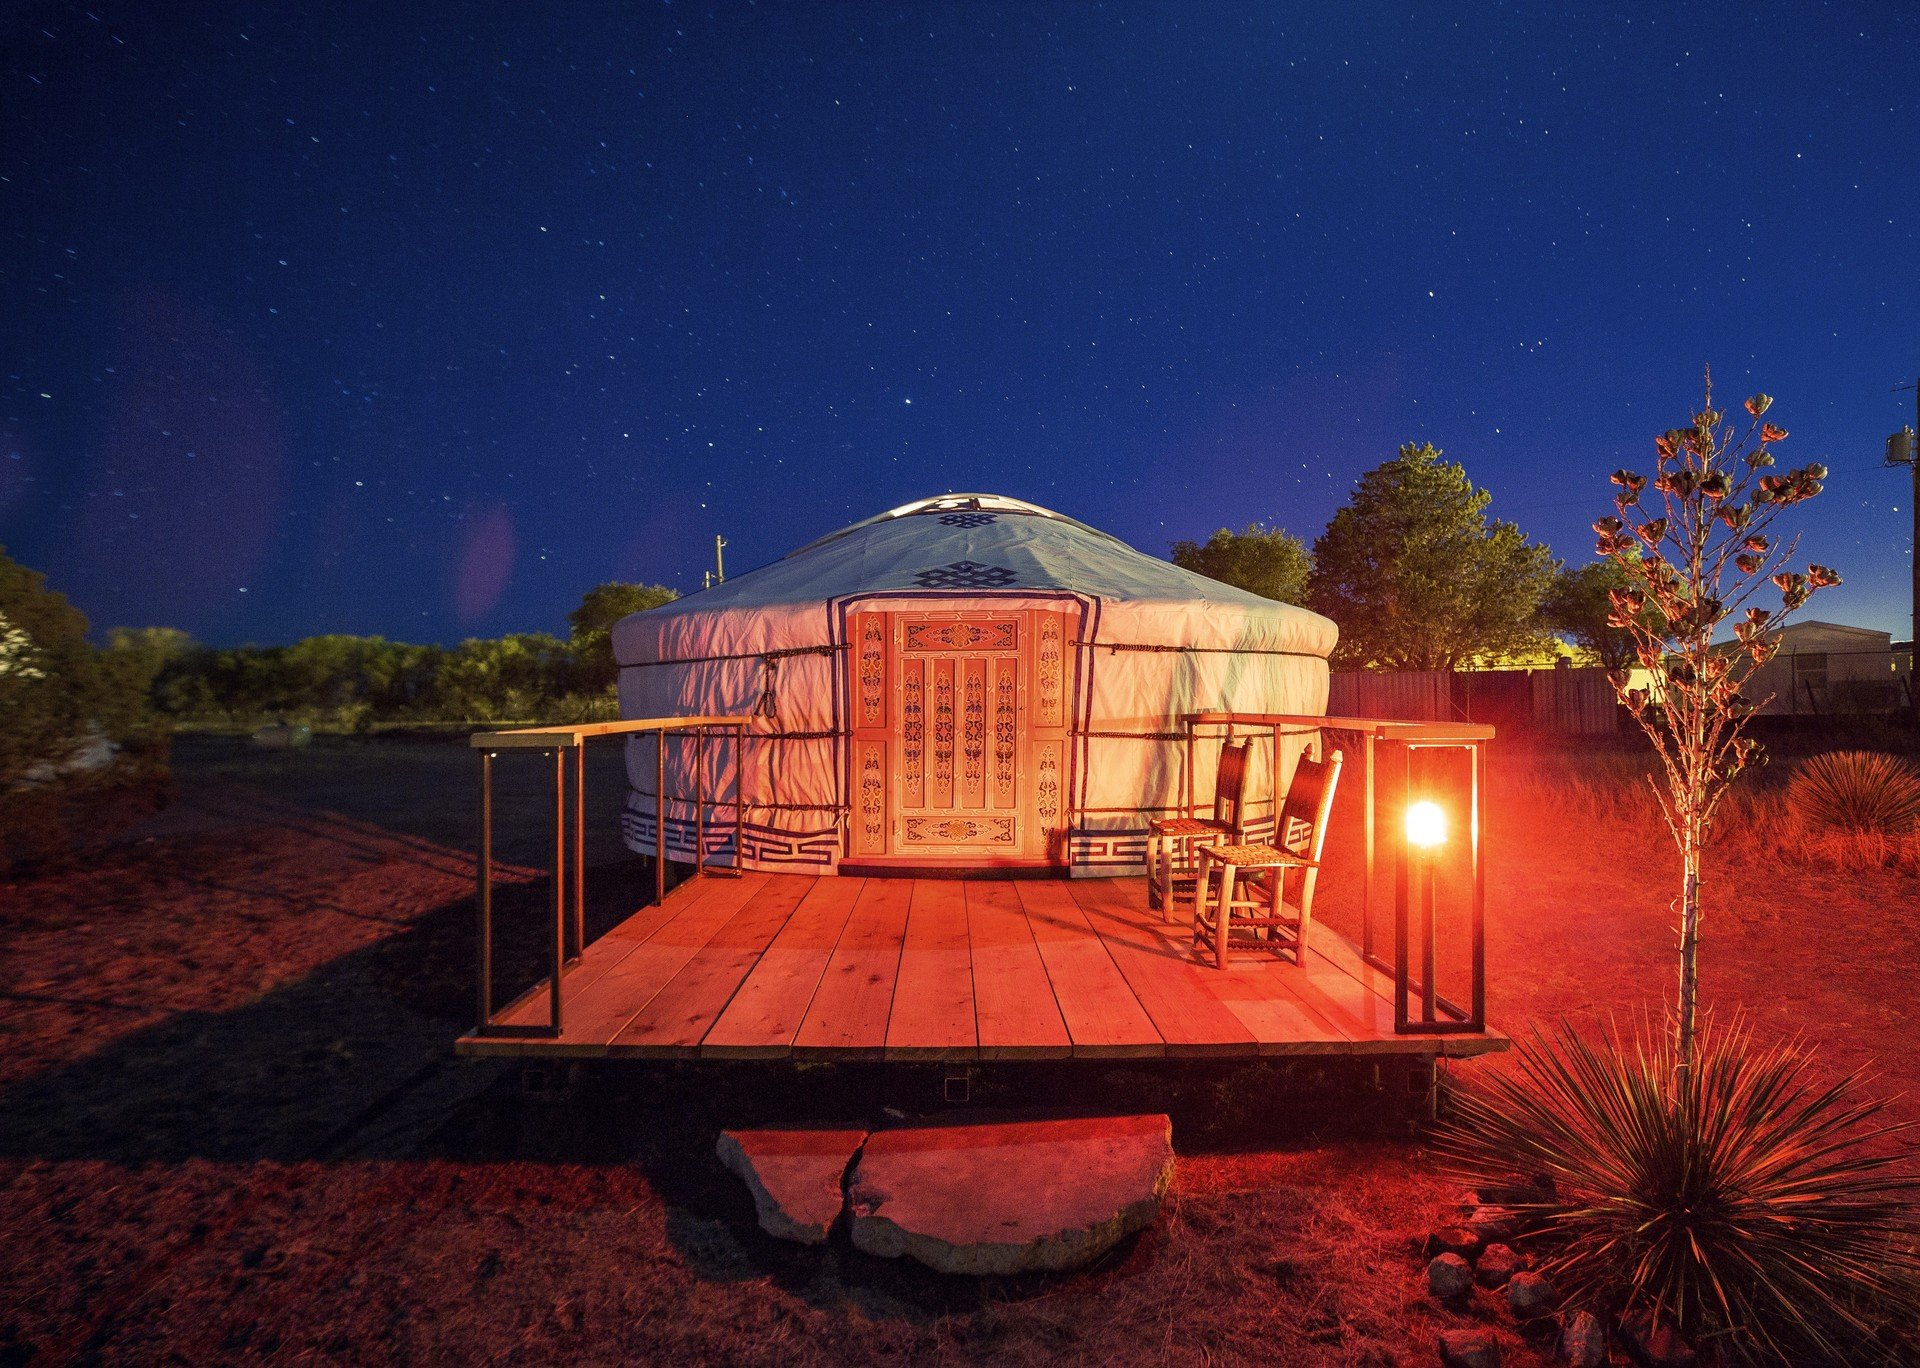 ambient lighting artistic artsy calm Exterior Glamping Hip isolation lounge chairs majestic night Night Sky Outdoors + Adventure Patio porch quirky remote serene stars tent tents Terrace trendy Weekend Getaways outdoor house building light evening estate lighting screenshot home landscape lighting theatre